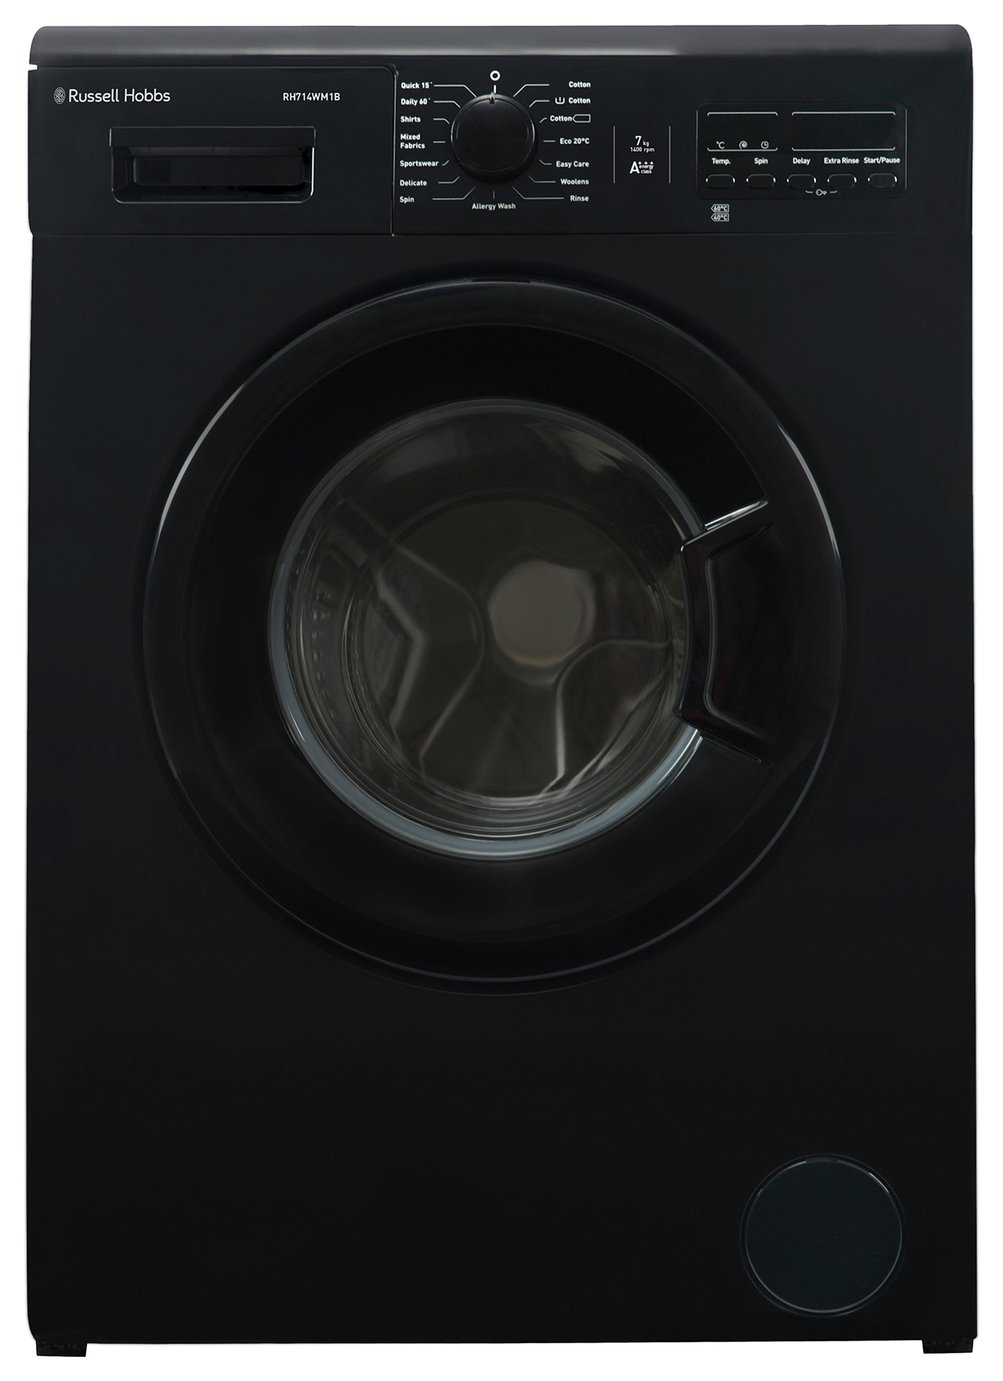 Russell Hobbs RH714WM1B 7KG 1400 Washing Machine - Black